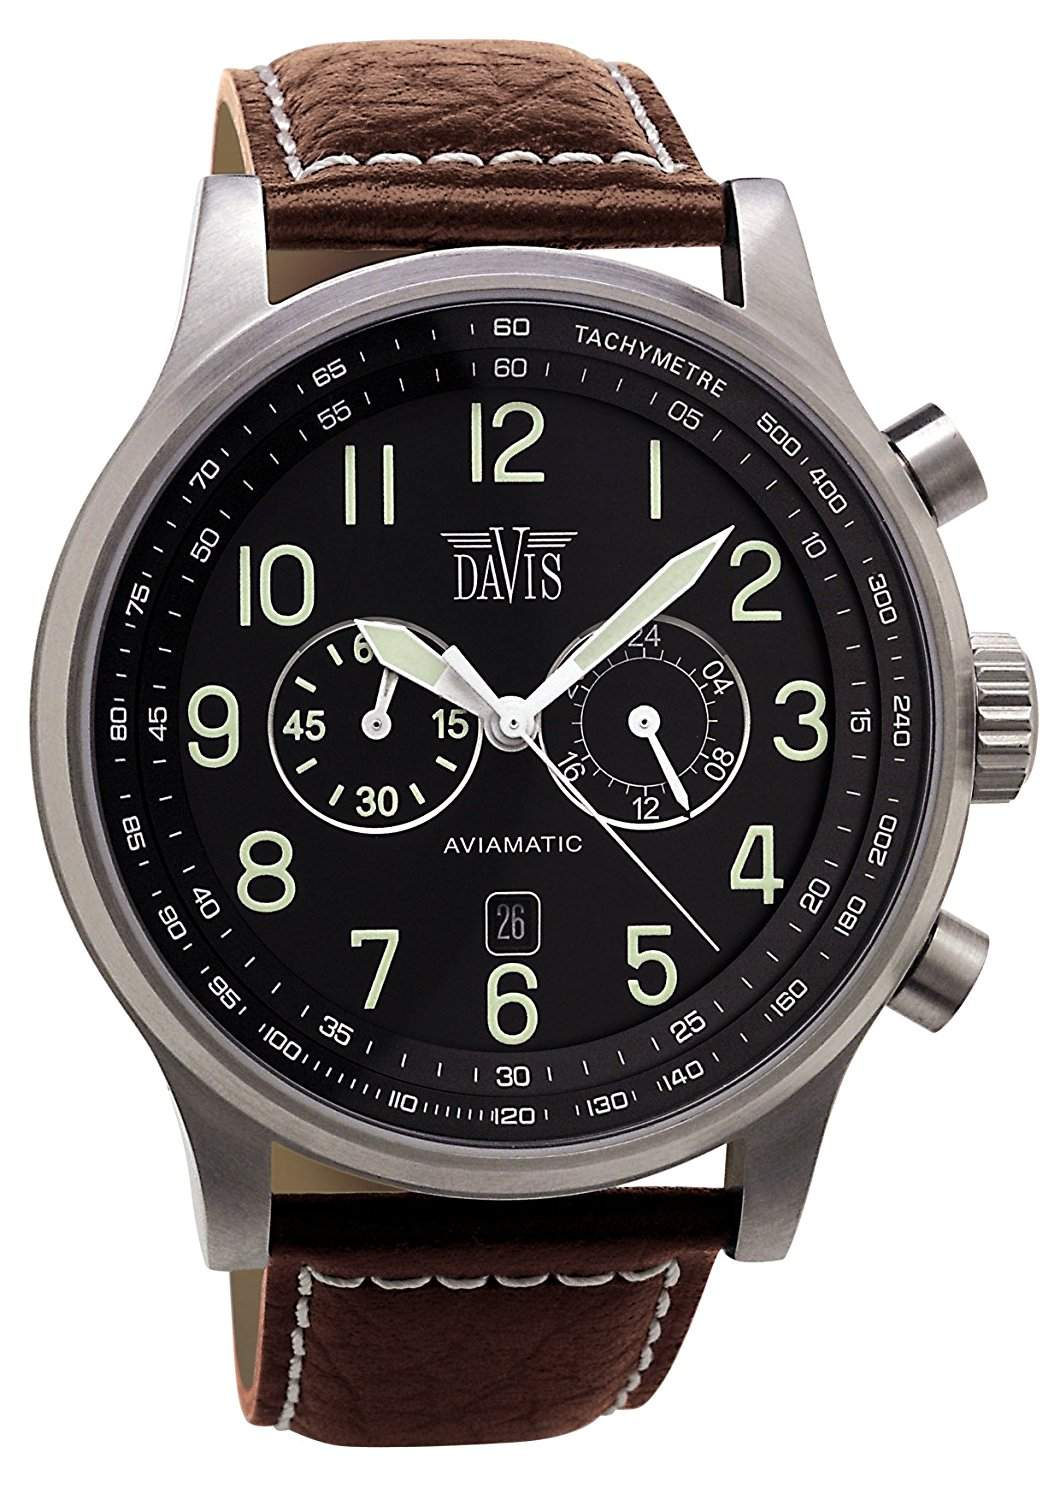 Davis 0451 - Herren Fliegeruhr Chronograph Wasserdicht 50M Ziffernblatt Schwarz Datum Lederarmband Braun